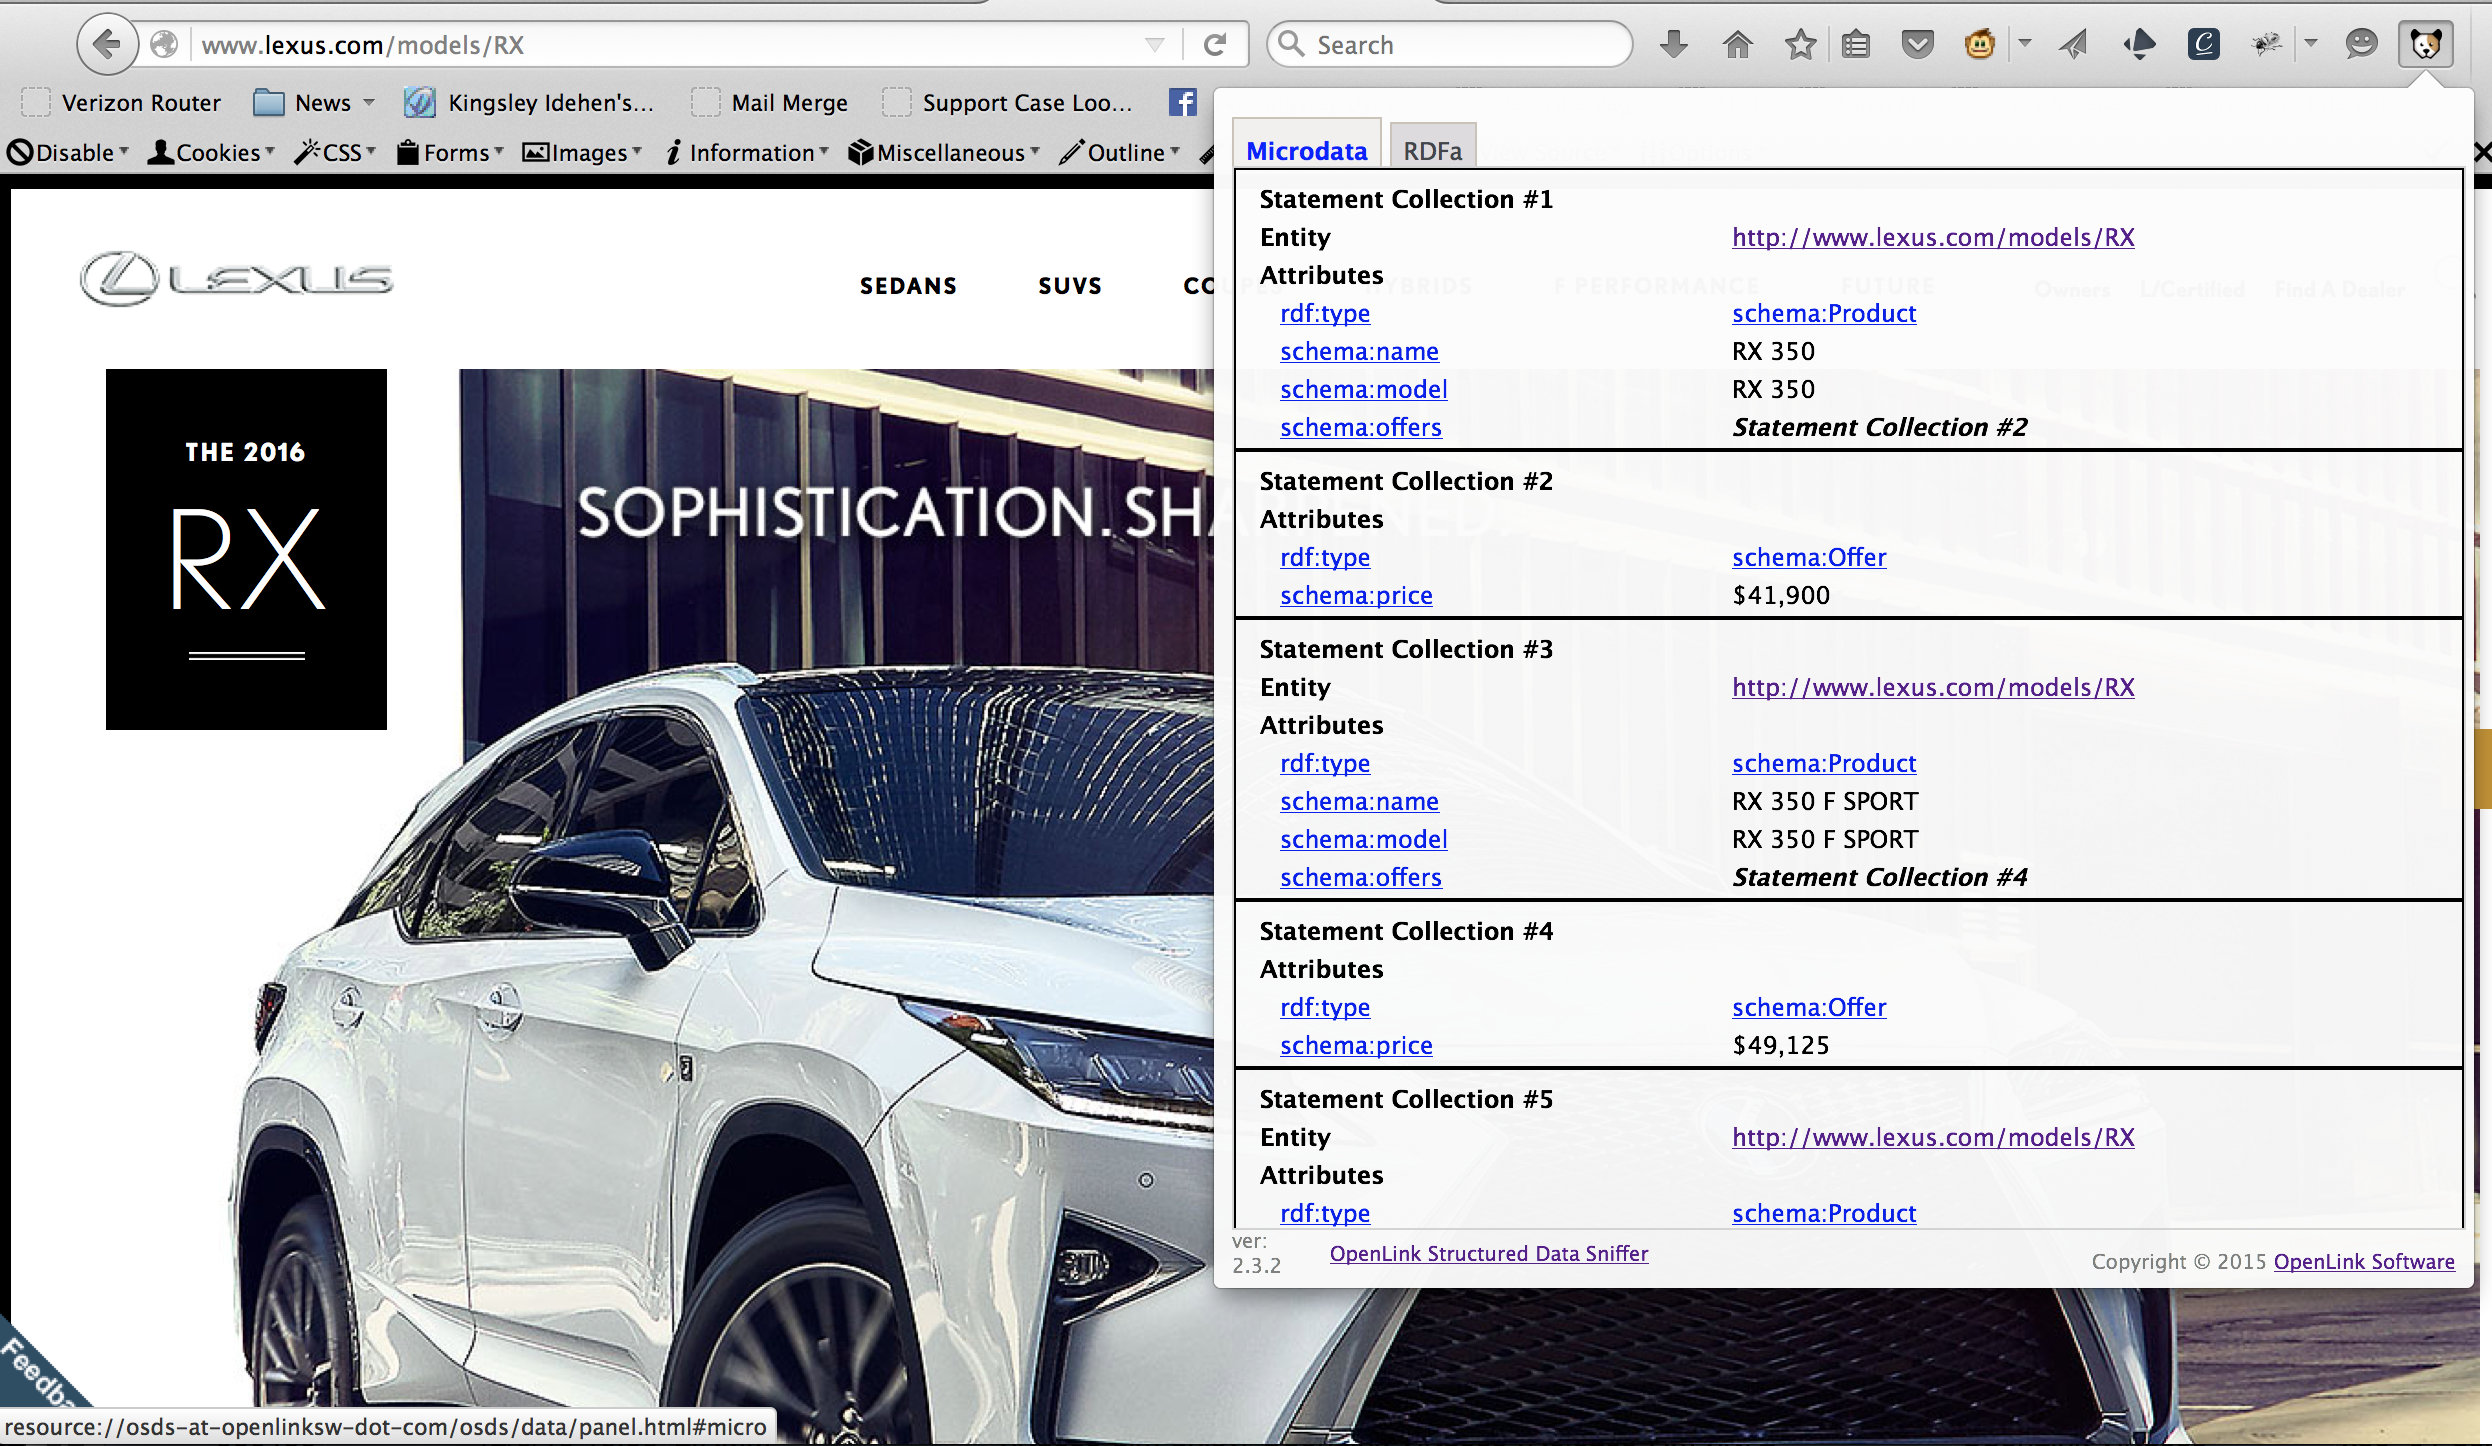 Lexus page showing smart use of HTML5+Microdata based Linked